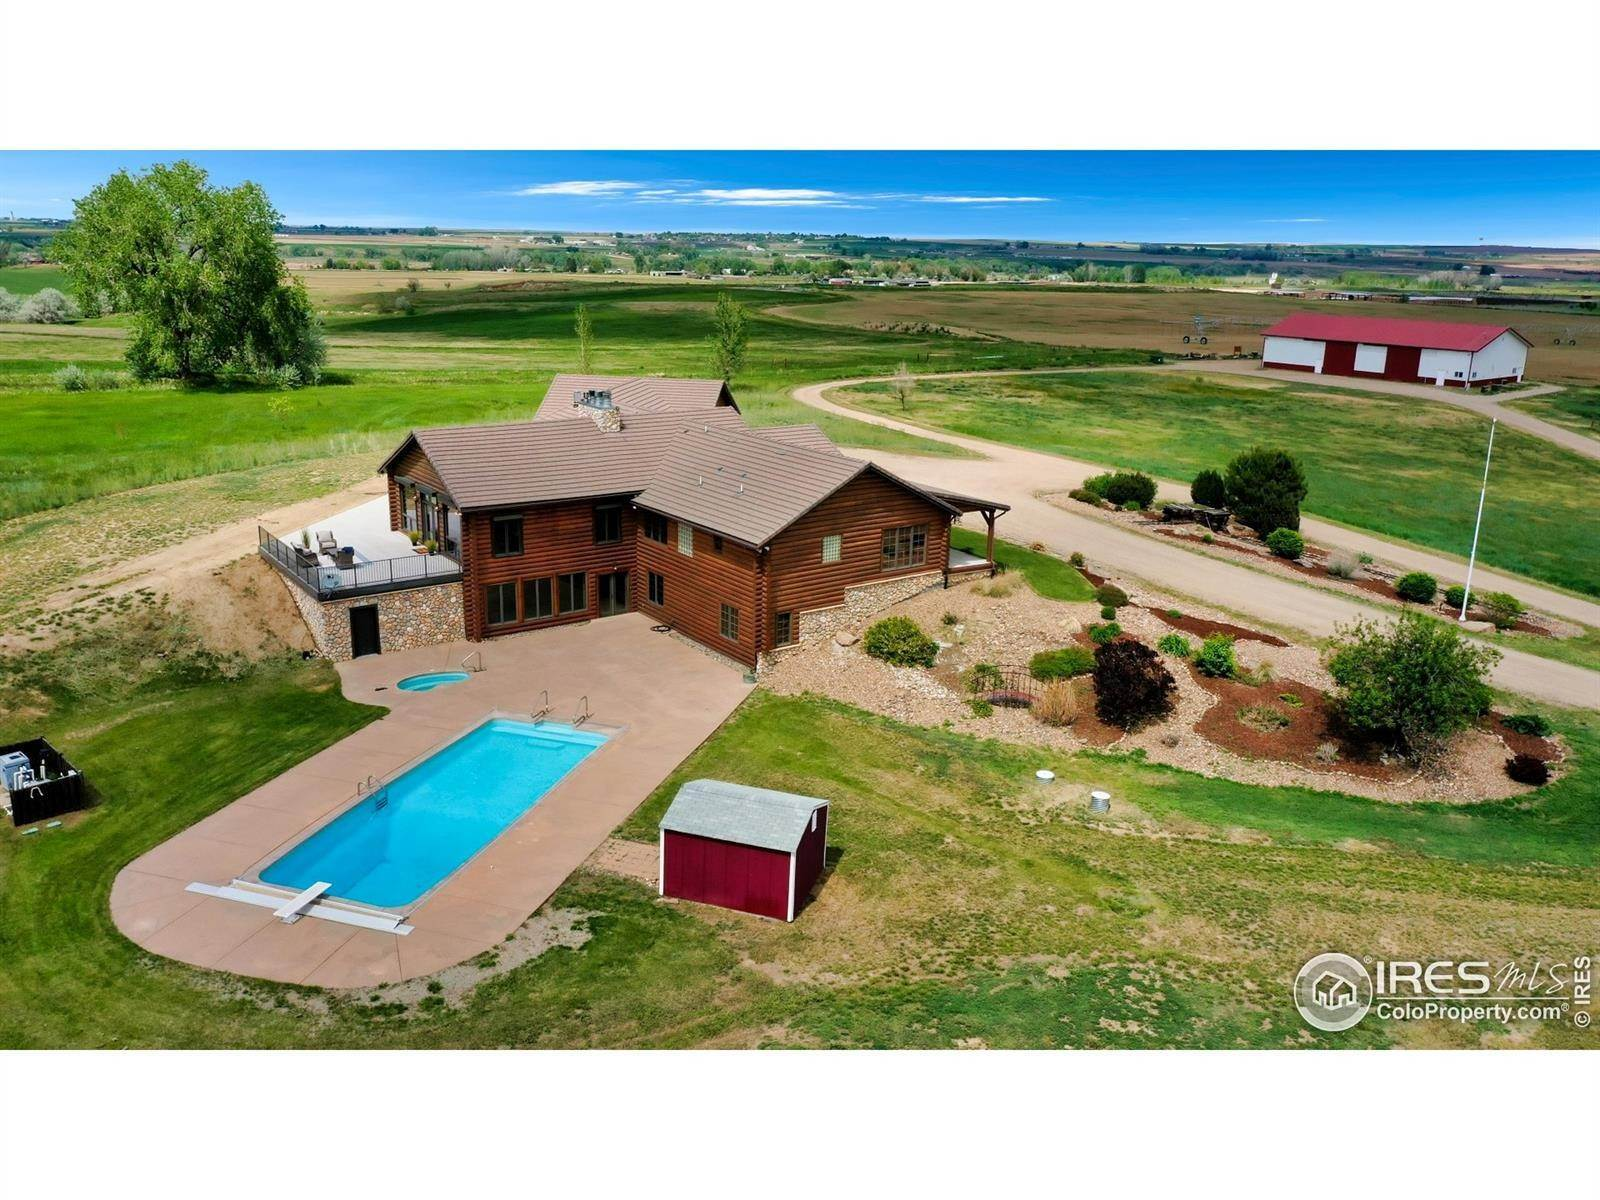 Single Family Homes for Sale at 8045 E County Road 16 Johnstown, Colorado 80534 United States